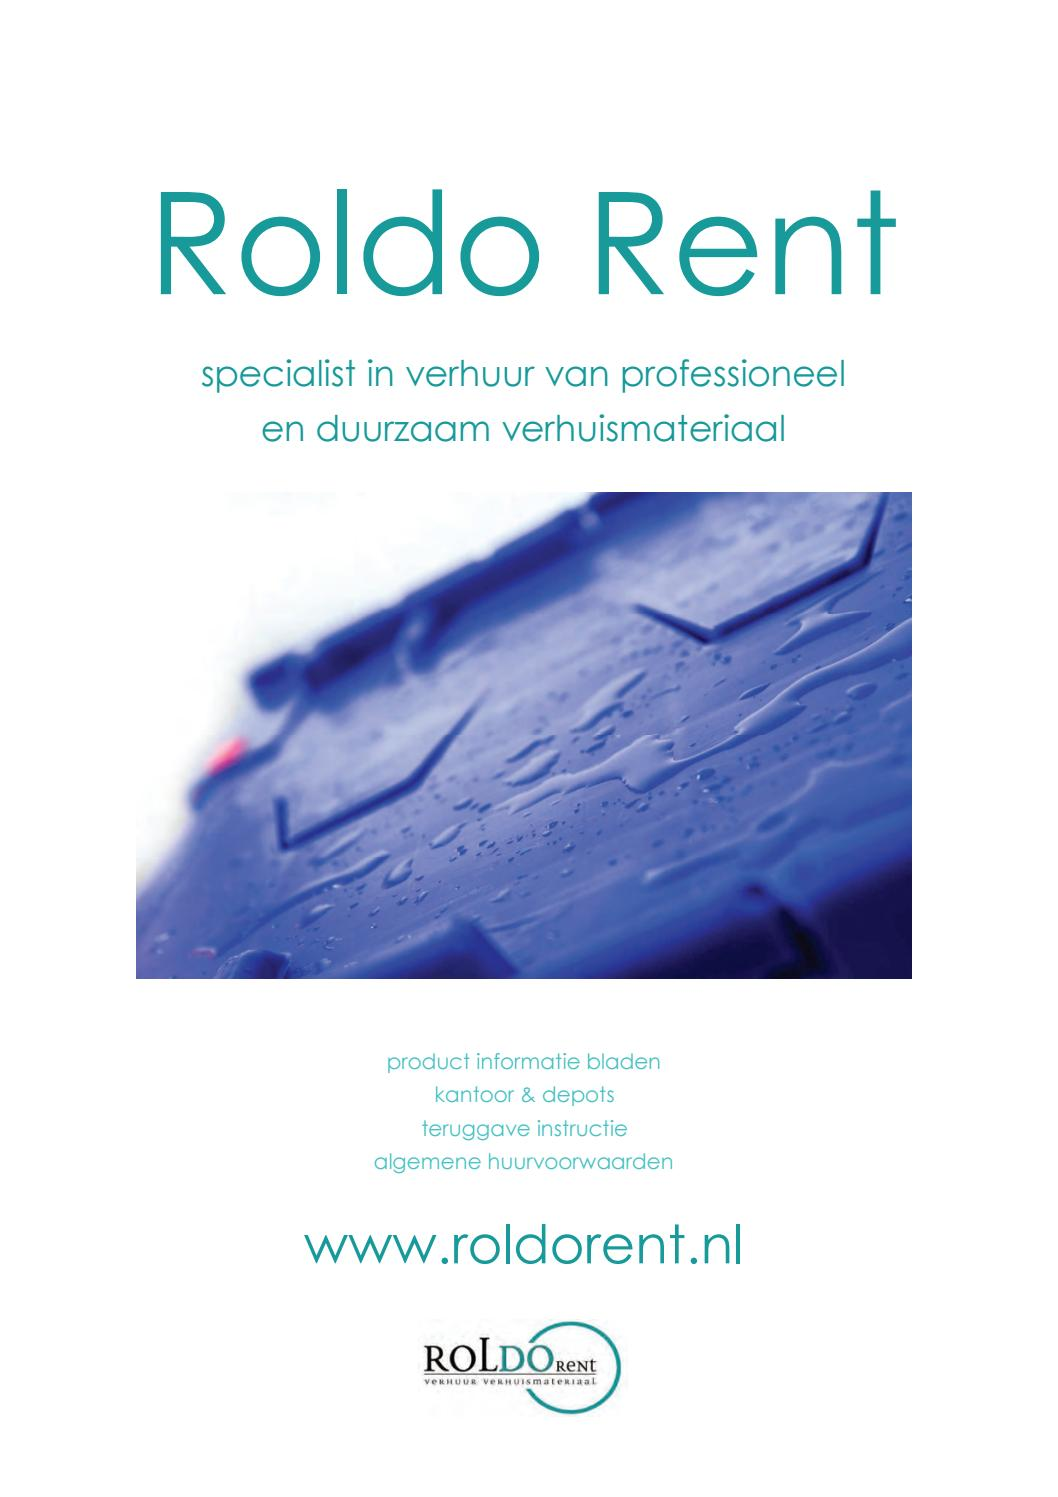 Hondje Verhuizen Digitale Brochure Roldo Rent Bv By Roldo Rent Issuu